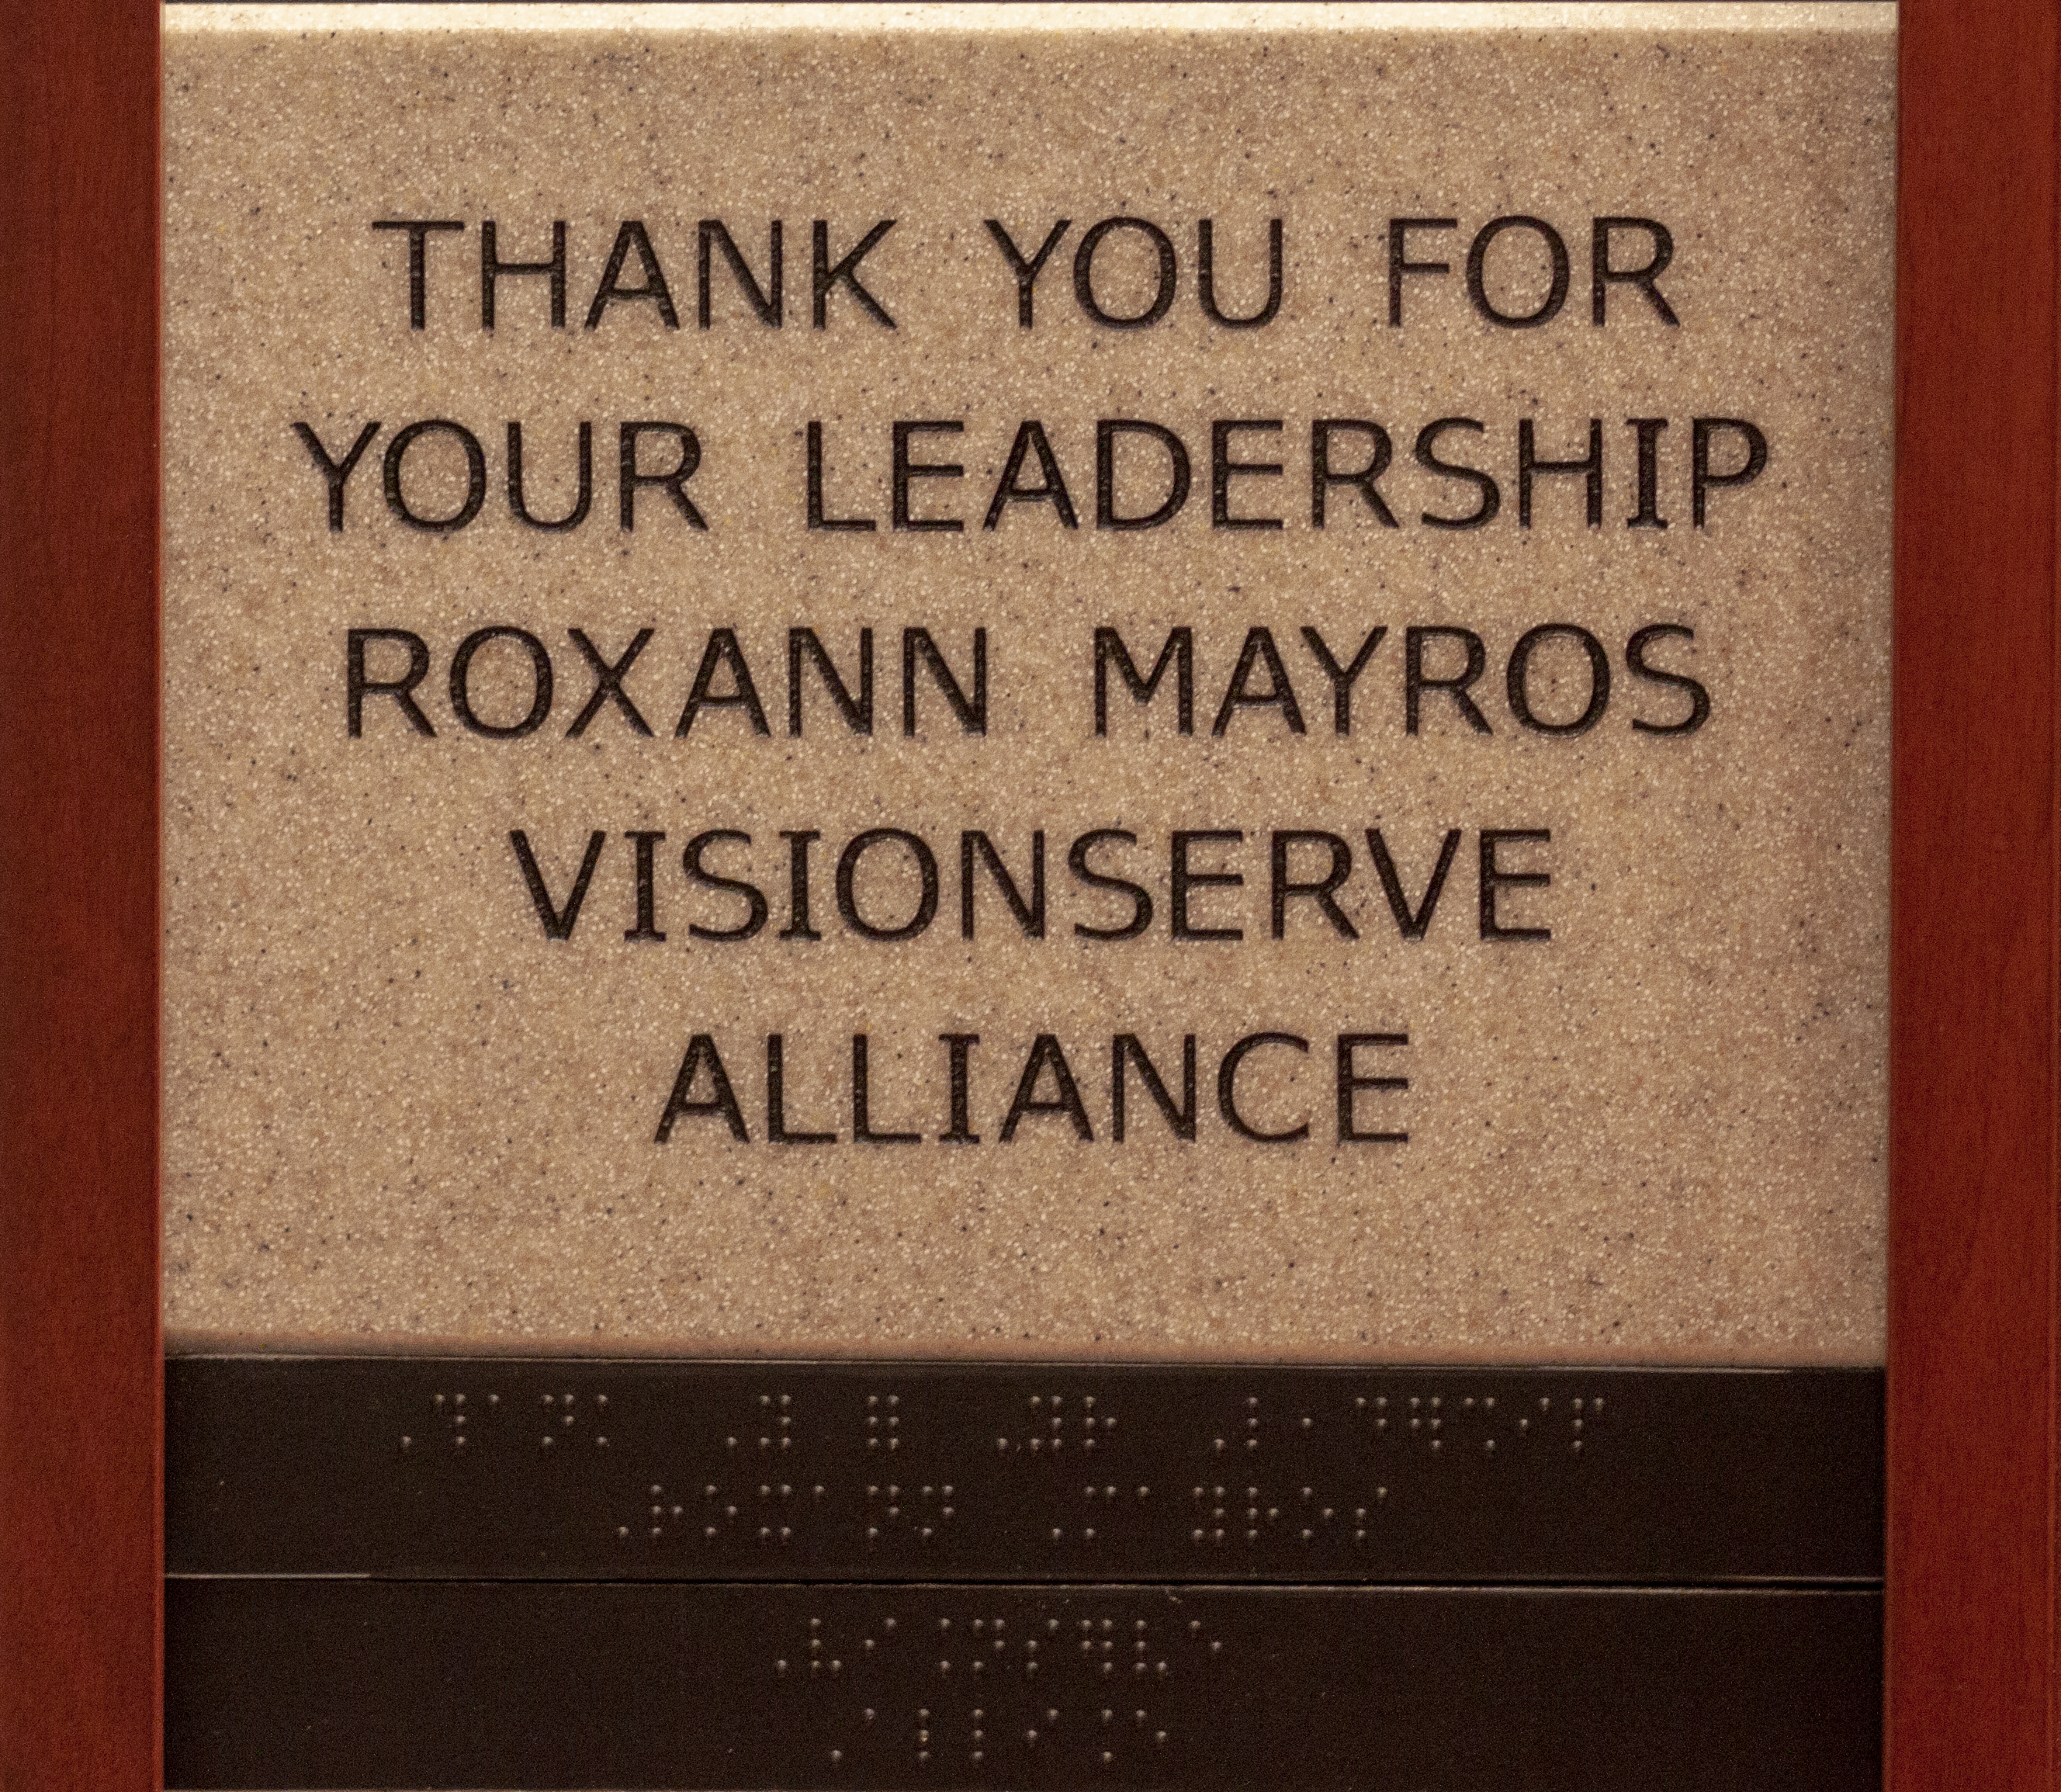 Thank You for your Leadership Roxann Mayros Visionserve Alliance